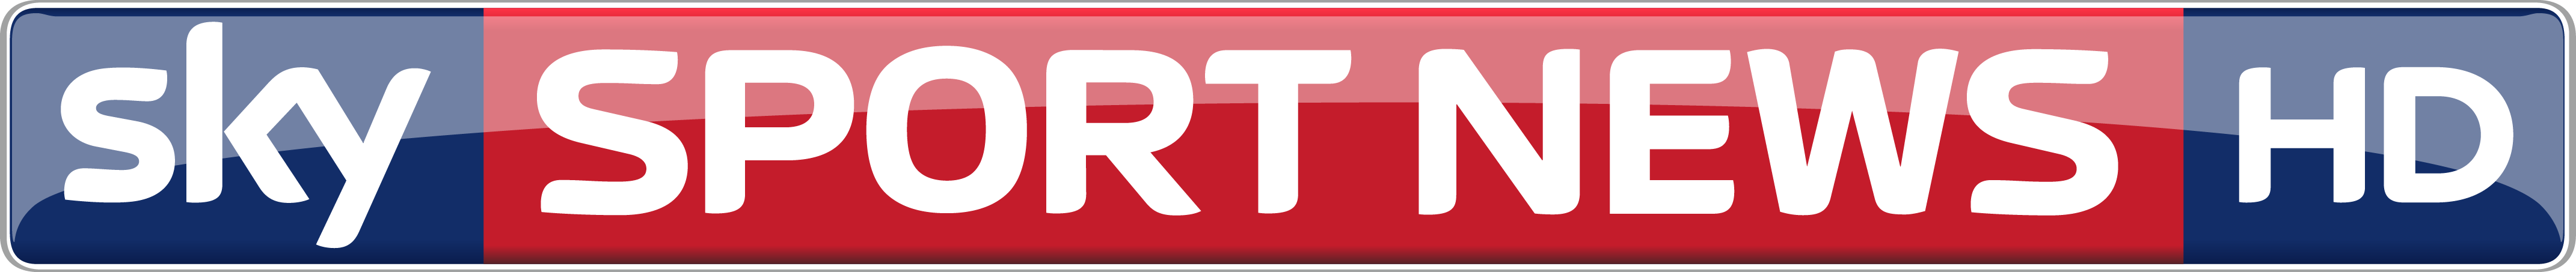 File:Sky Sport News HD Logo 2016.png - Wikimedia Commons